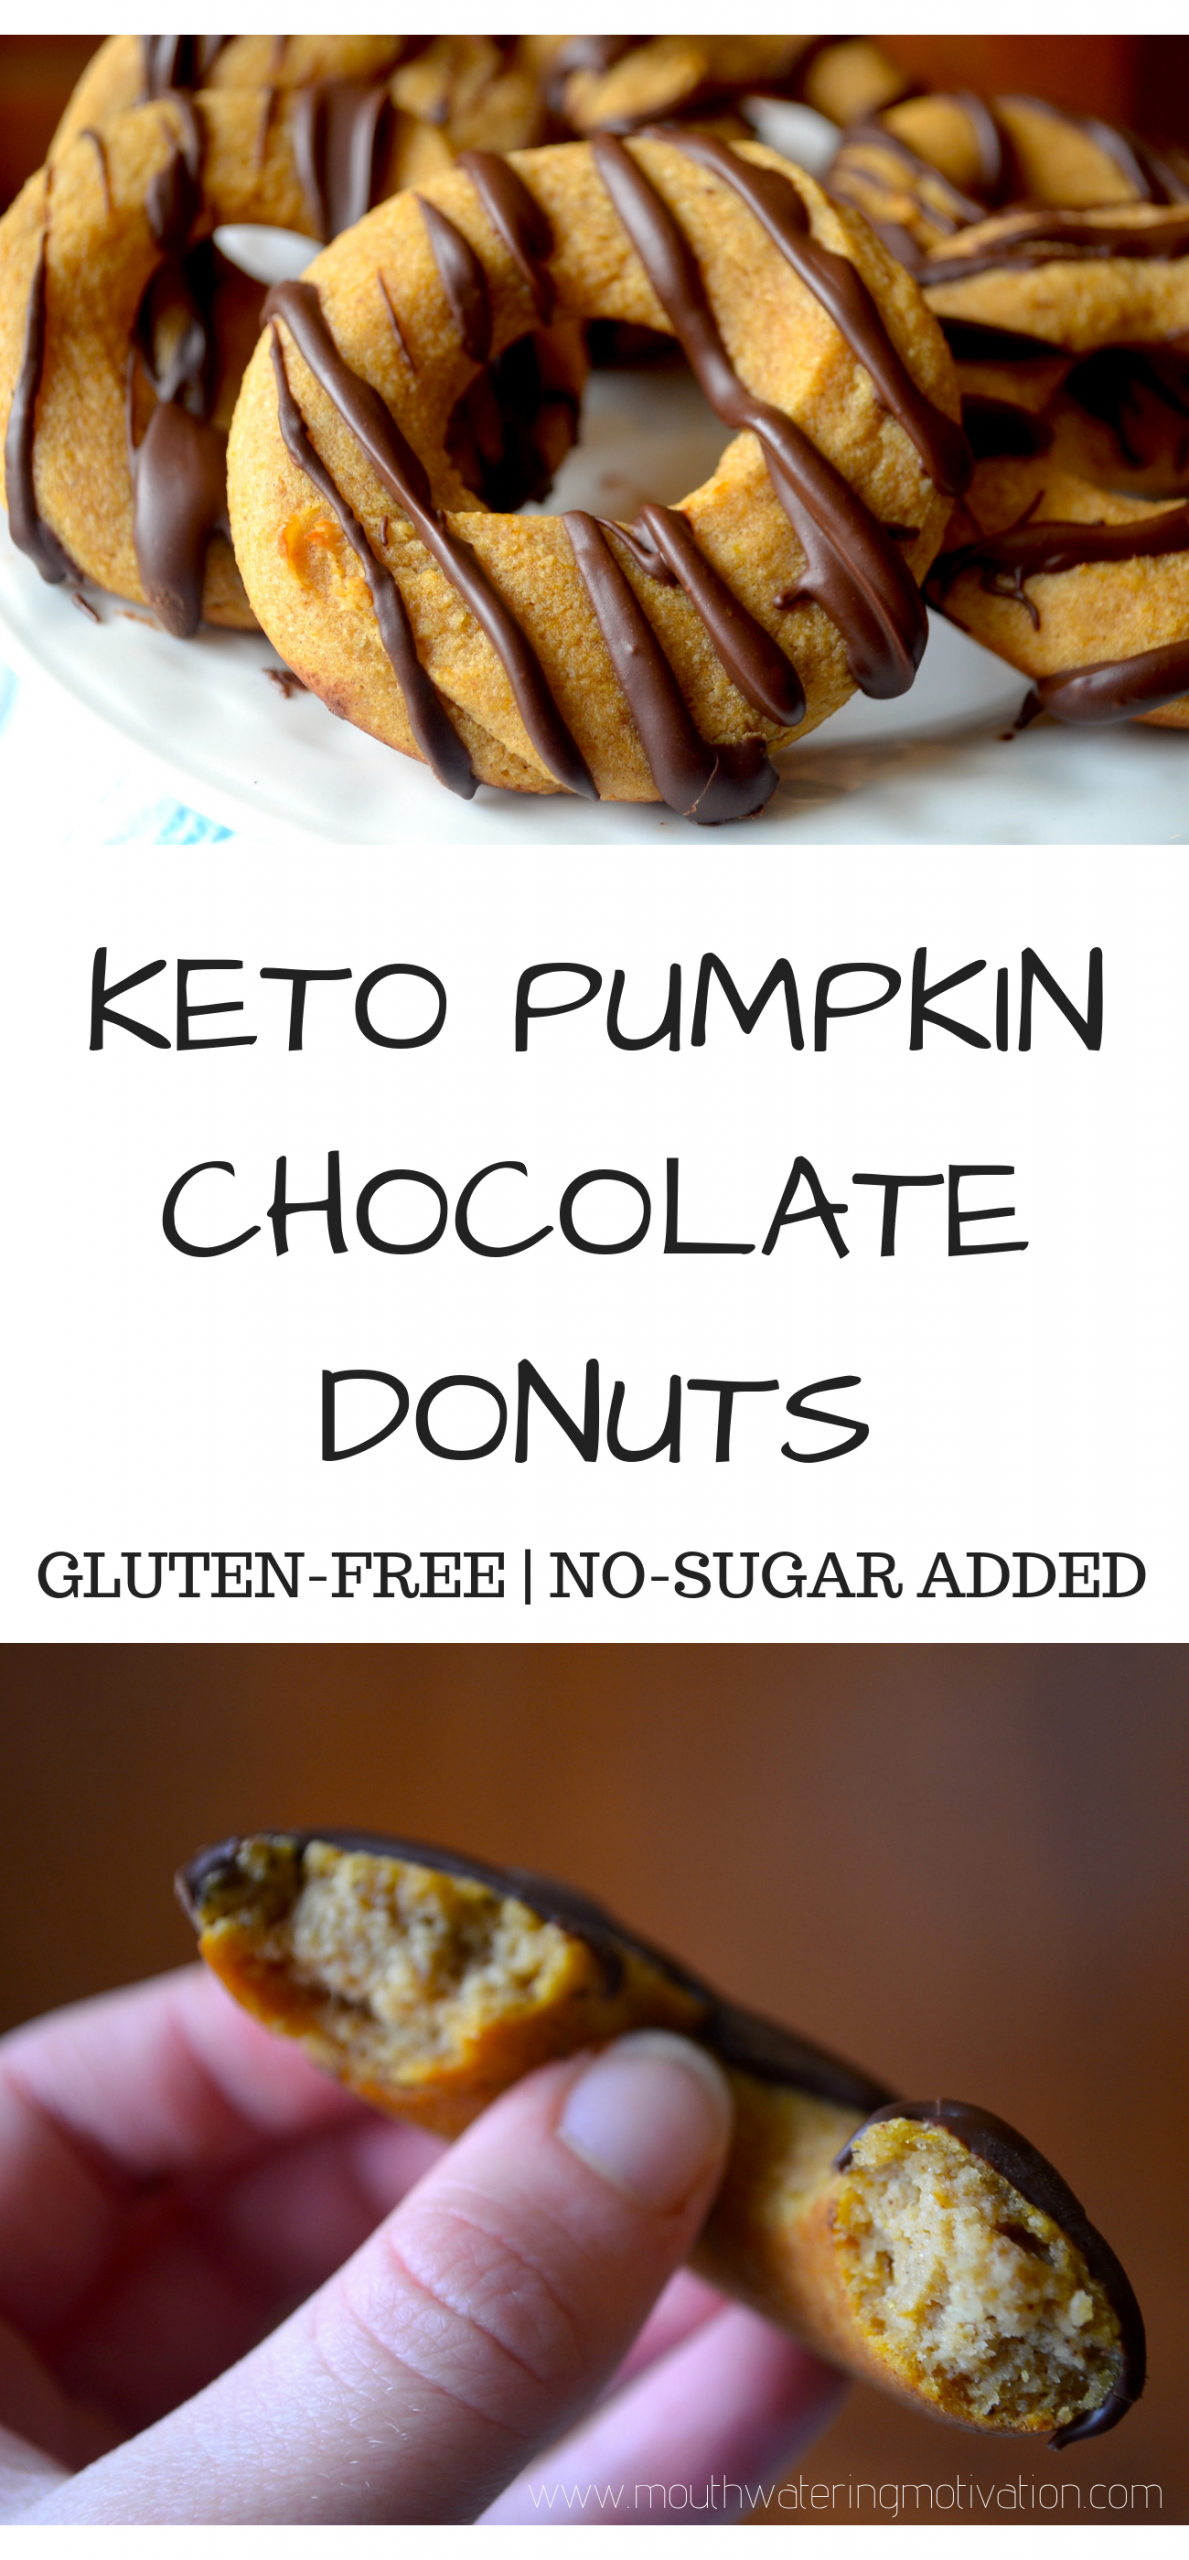 KETO PUMPKIN CHOCOLATE DONUTS.png